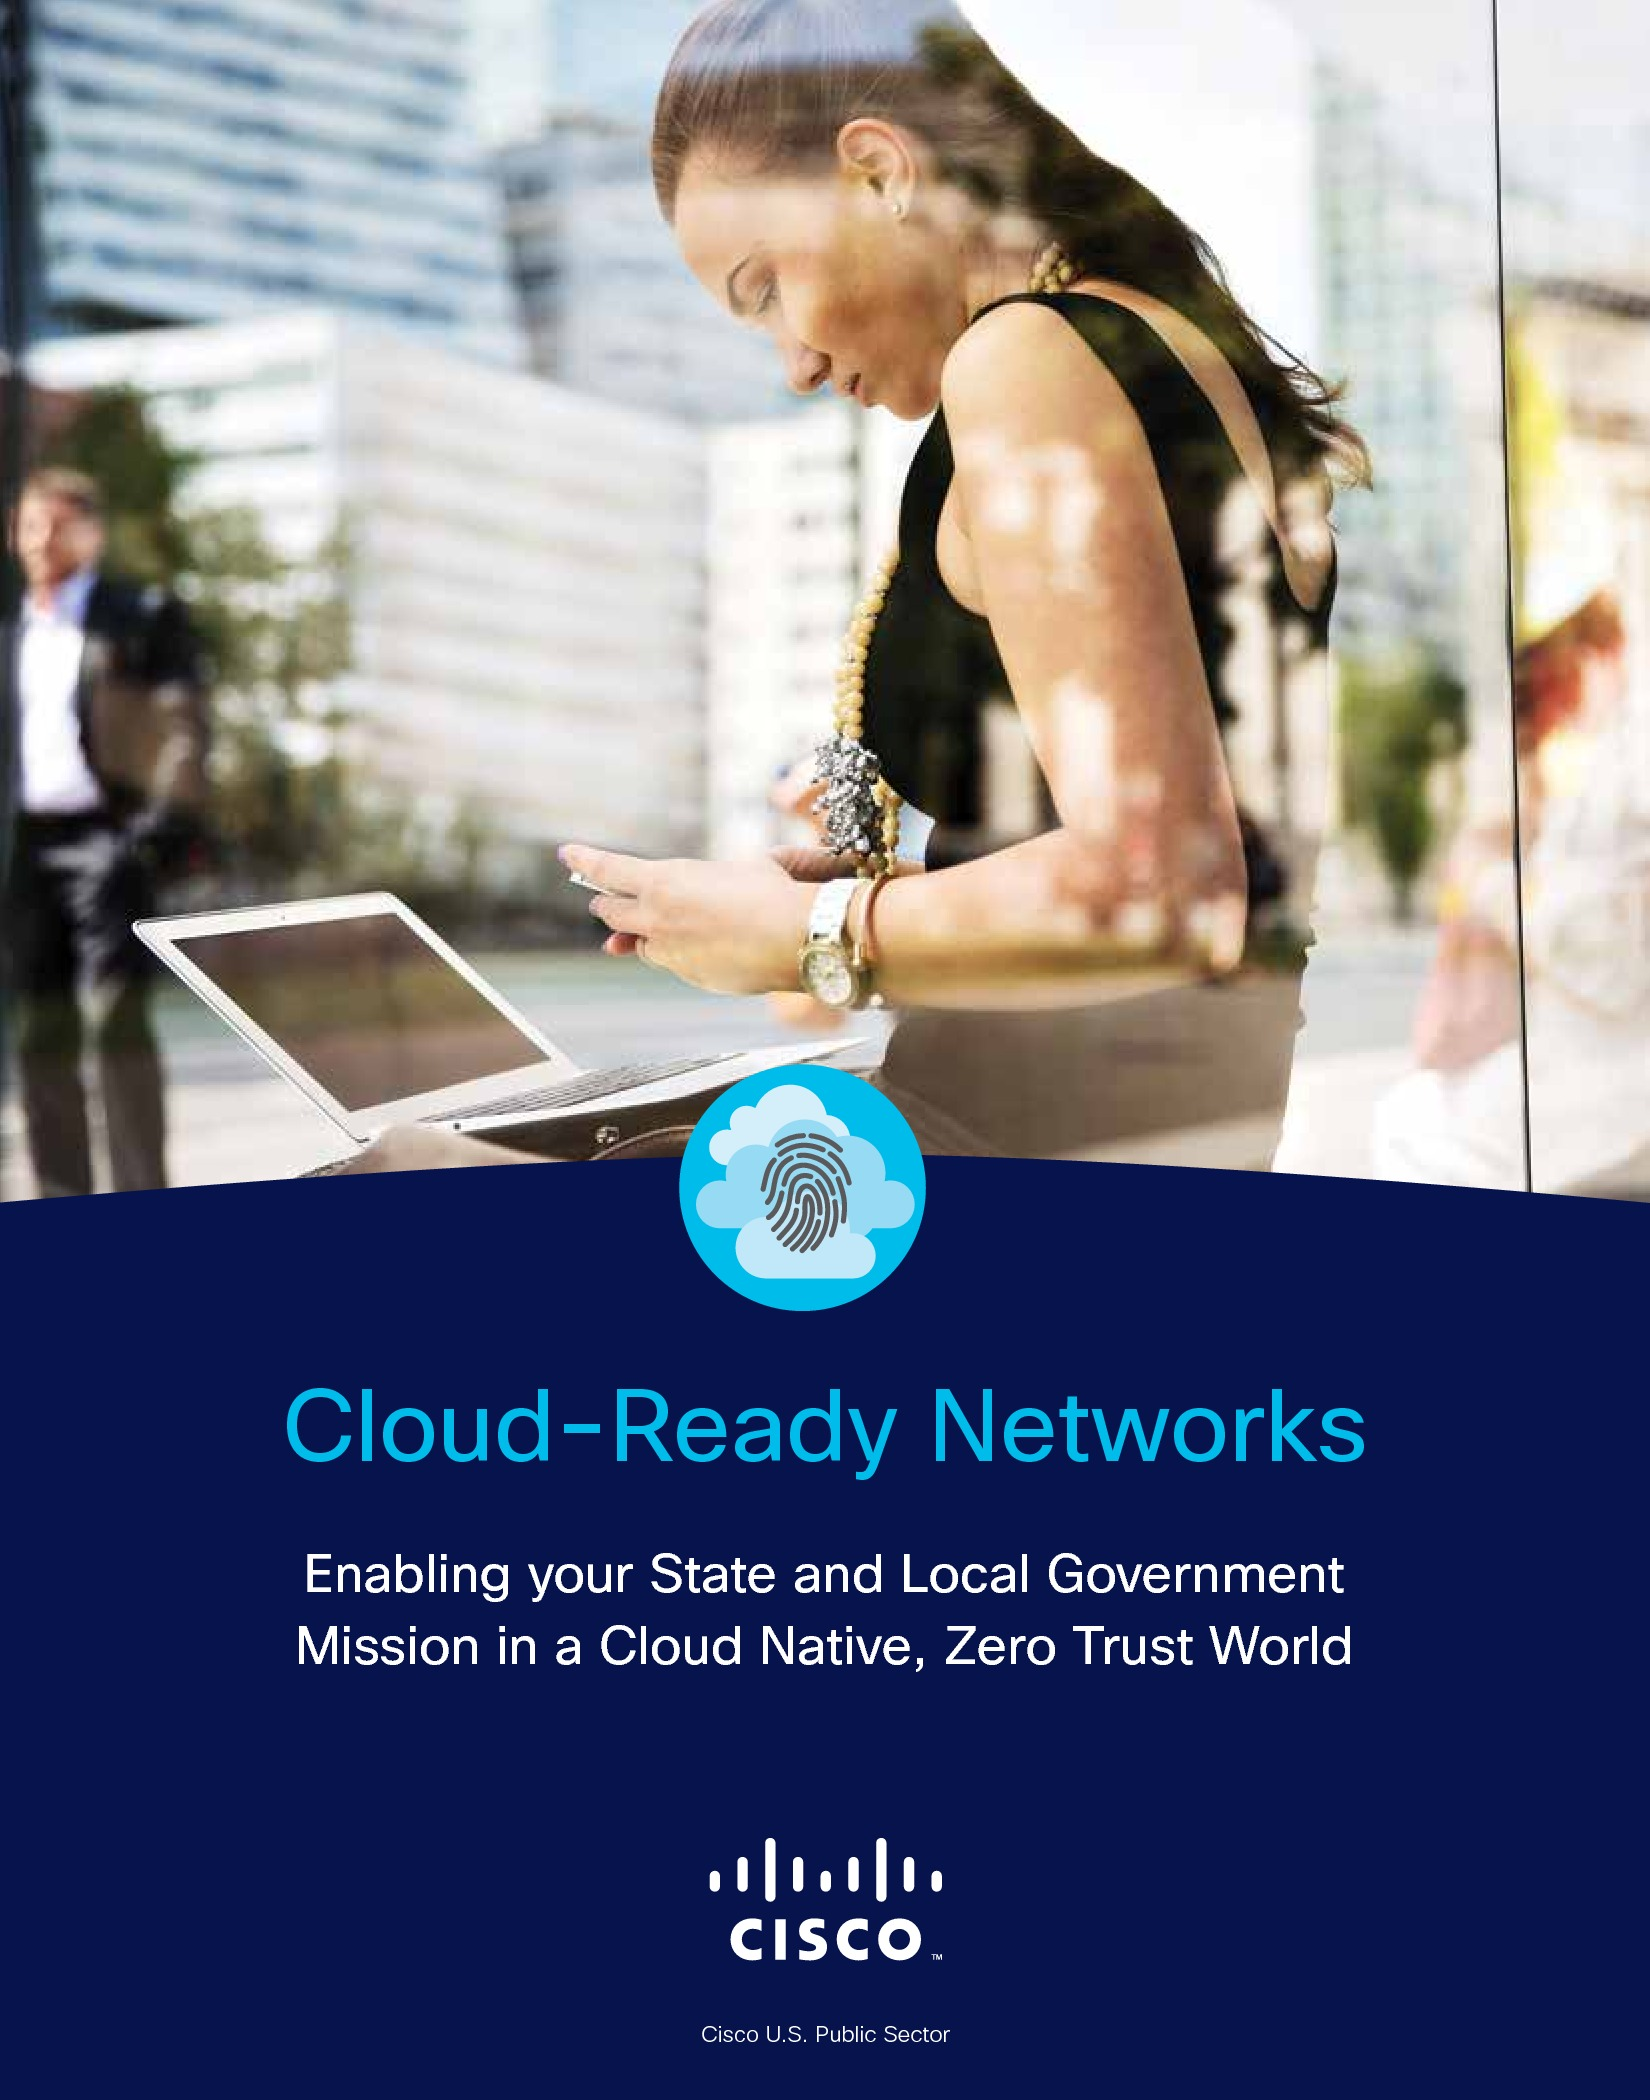 GT - Cisco - Client Supplied - 200212 - Cloud-Ready Networks